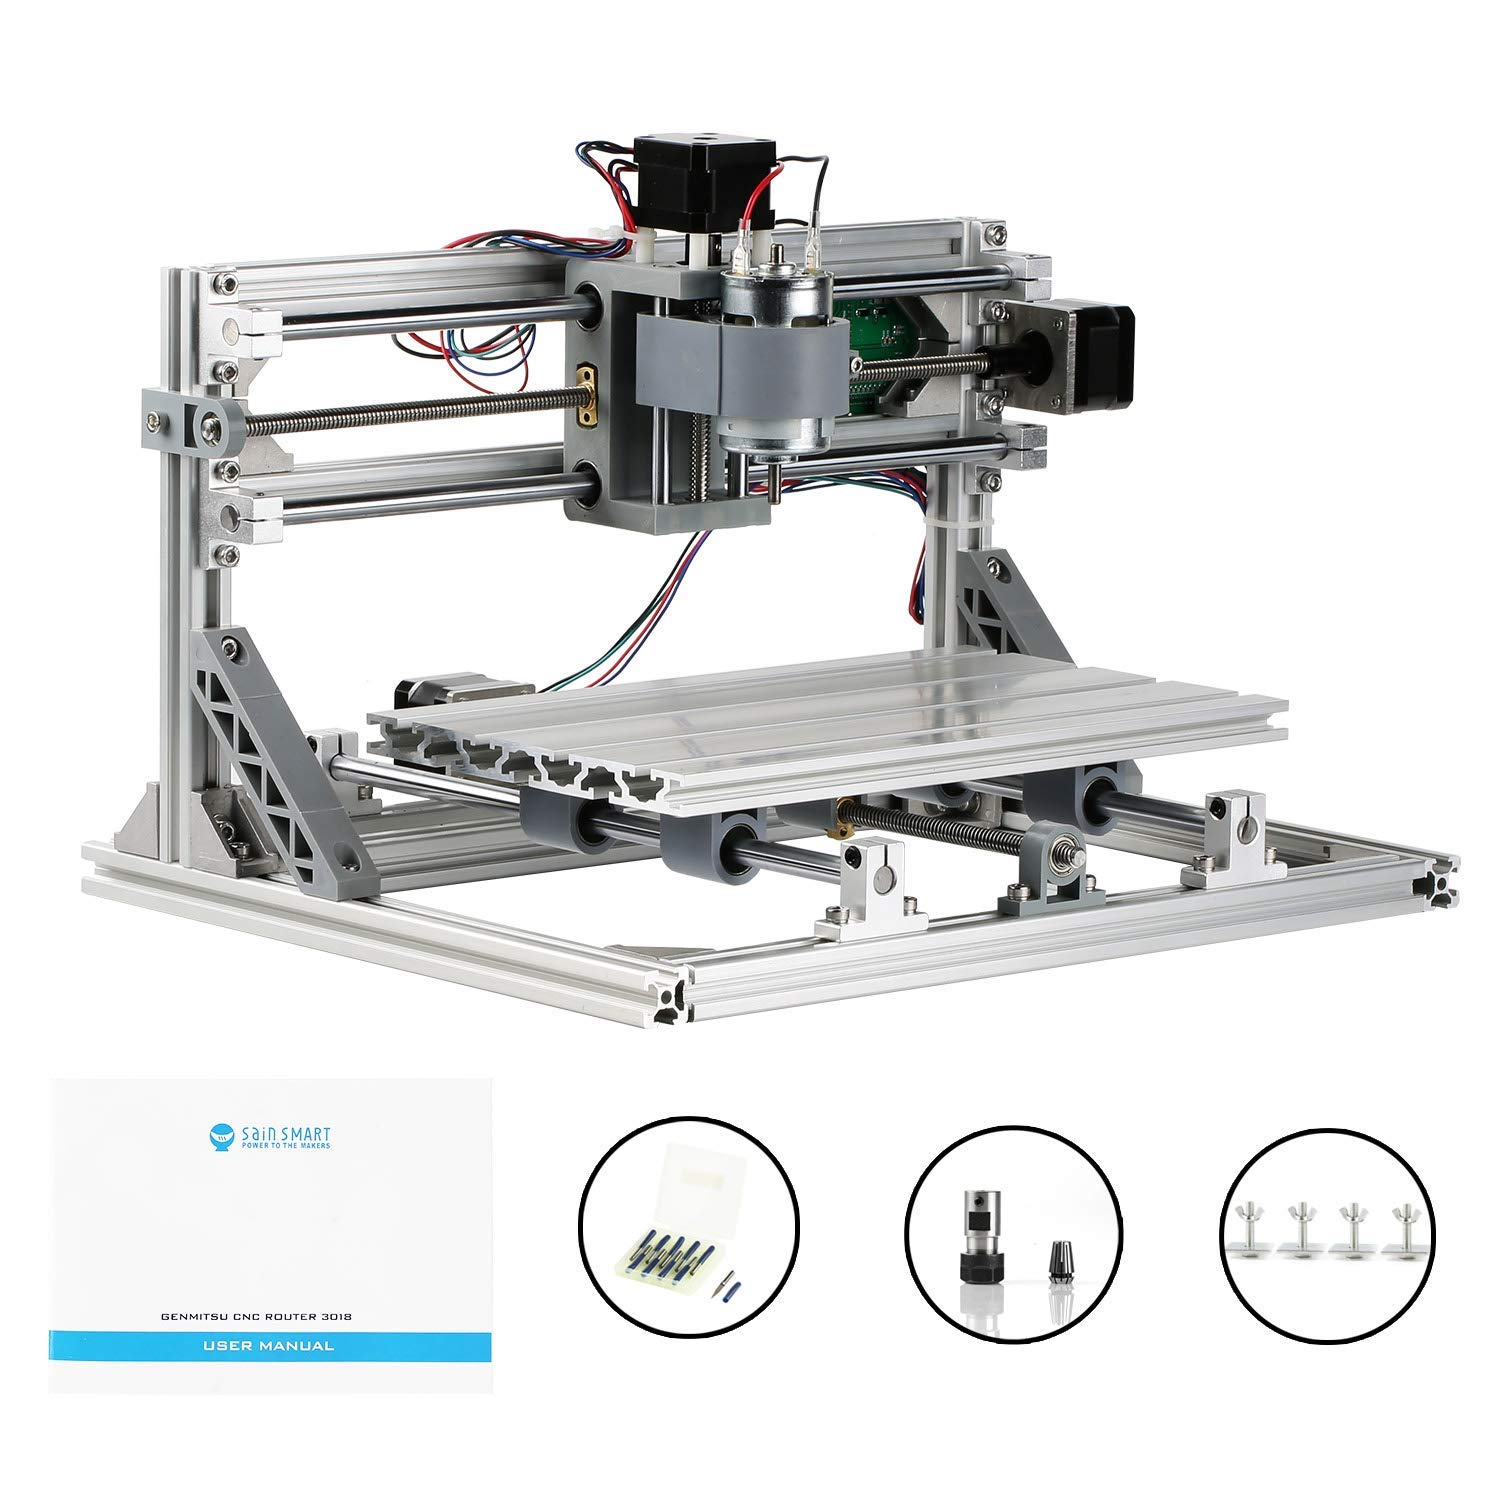 Genmitsu CNC 3018 Router Kit GRBL Control 3 Axis Plastic Acrylic PCB PVC  Wood Carving Milling Engraving Machine